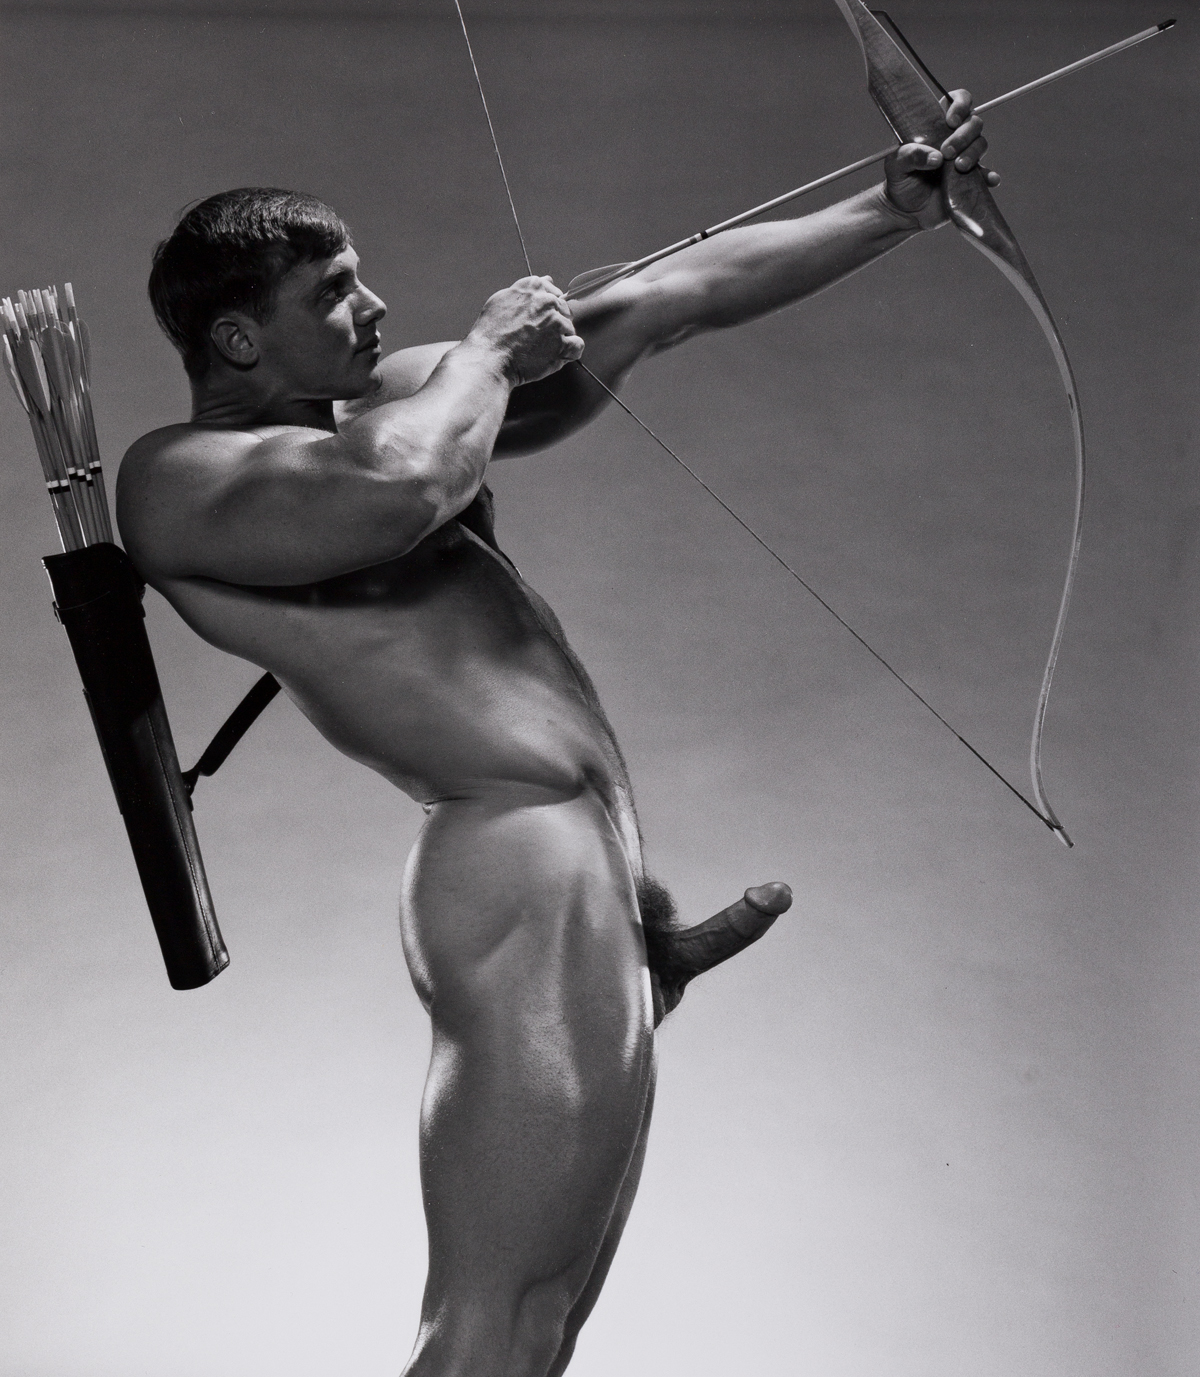 JIM FRENCH (1932-2017) John Pruit, Bow and Arrow.